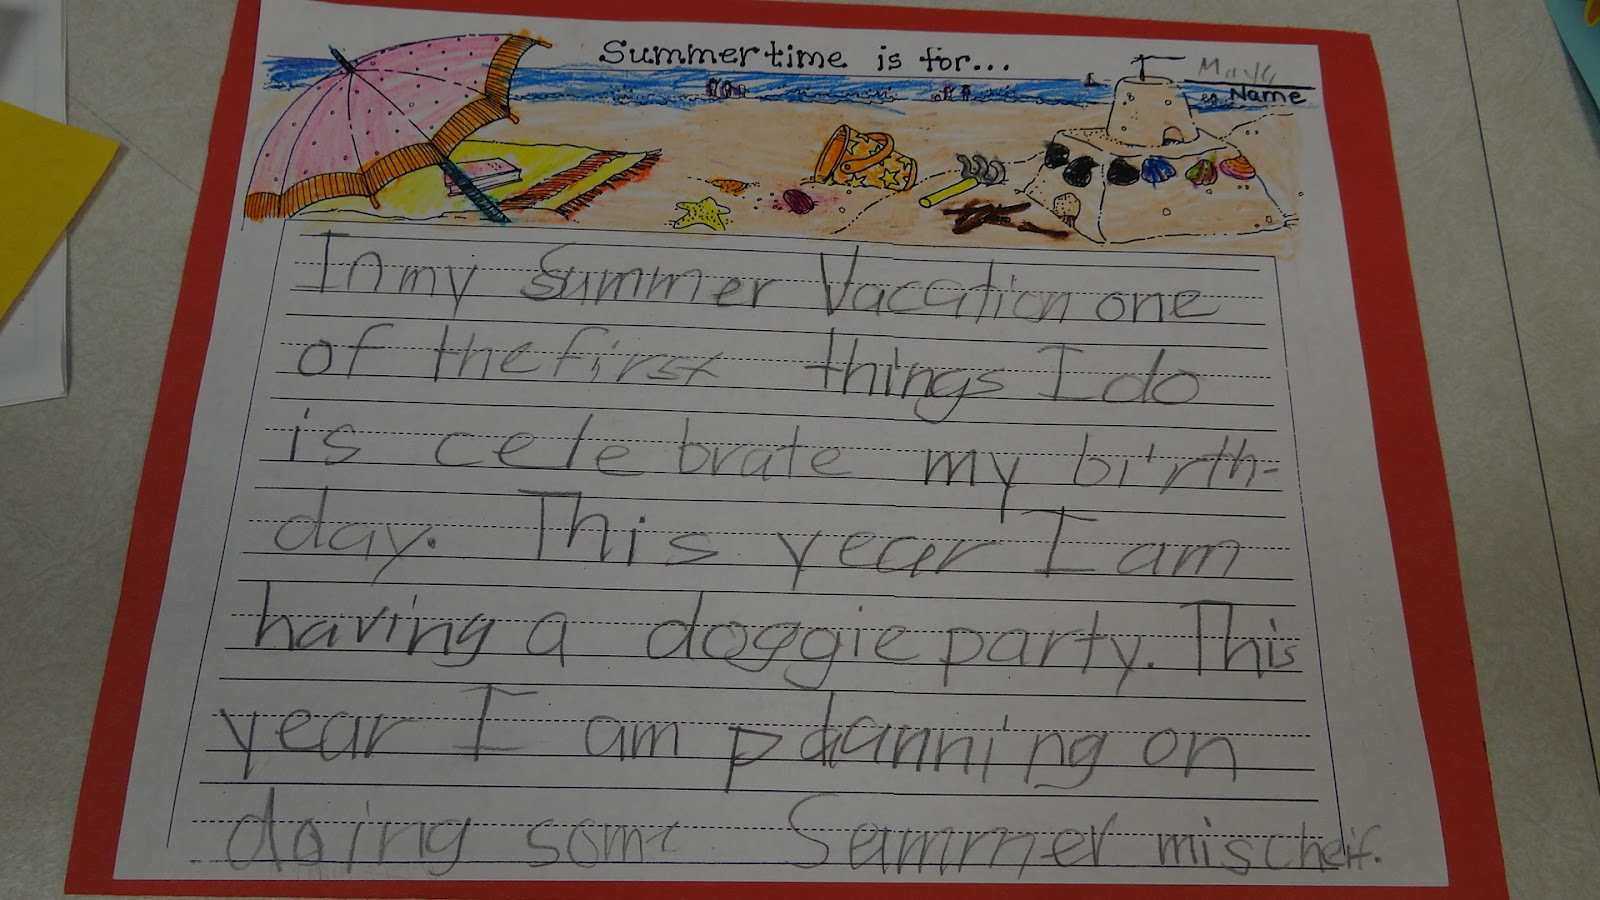 Summer vacations essay for kids